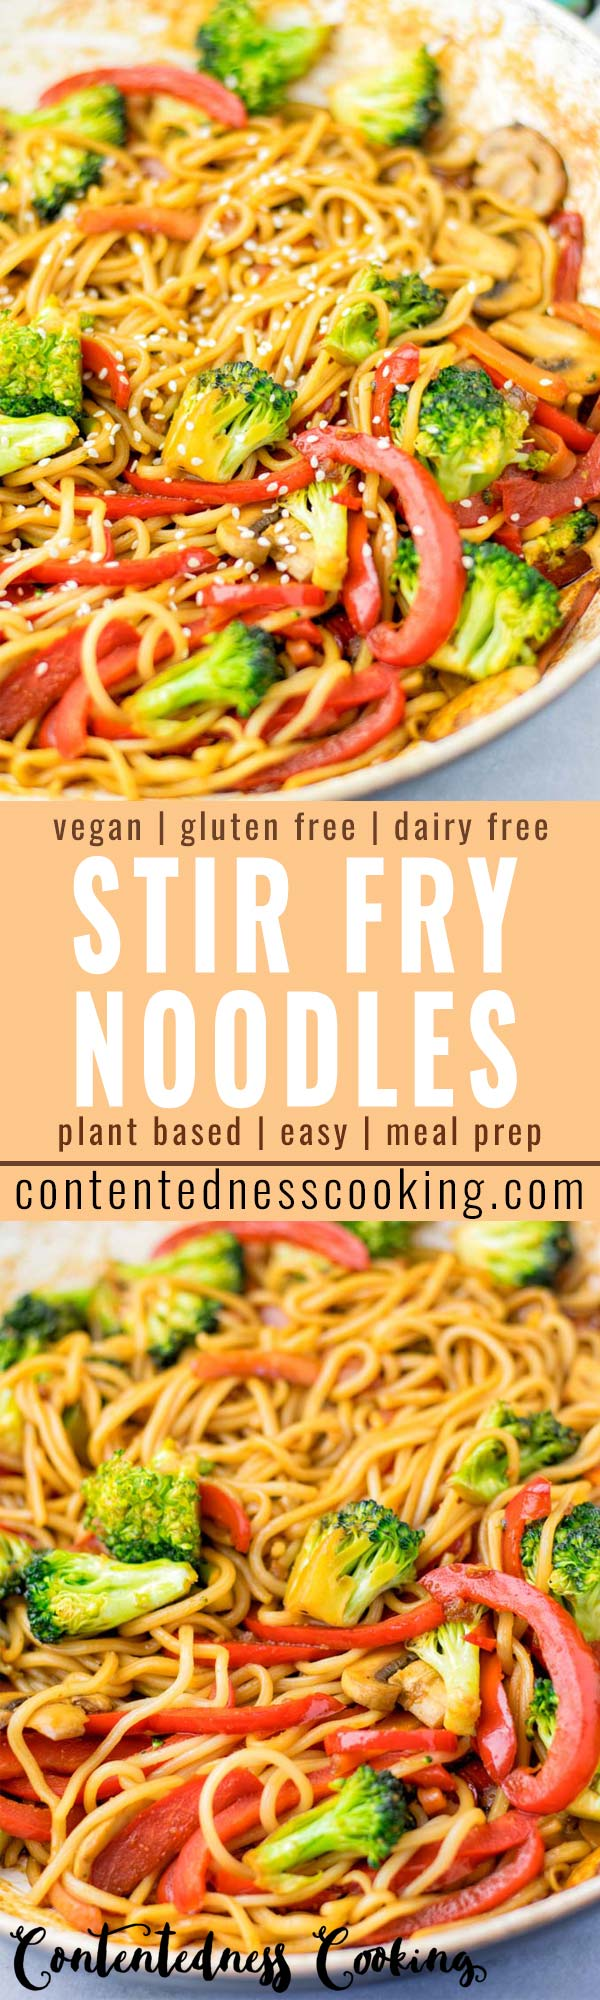 These Stir Fry Noodles are made with a homemade stir fry sauce and done in no time. It is a one pot meal, which is naturally vegan, gluten free and so delicious that the whole family will love it. #vegan #dairyfree #glutenfree #vegetarian #onepotmeals #contentednesscooking #dinner #lunch #mealprep #stirfrynoodles